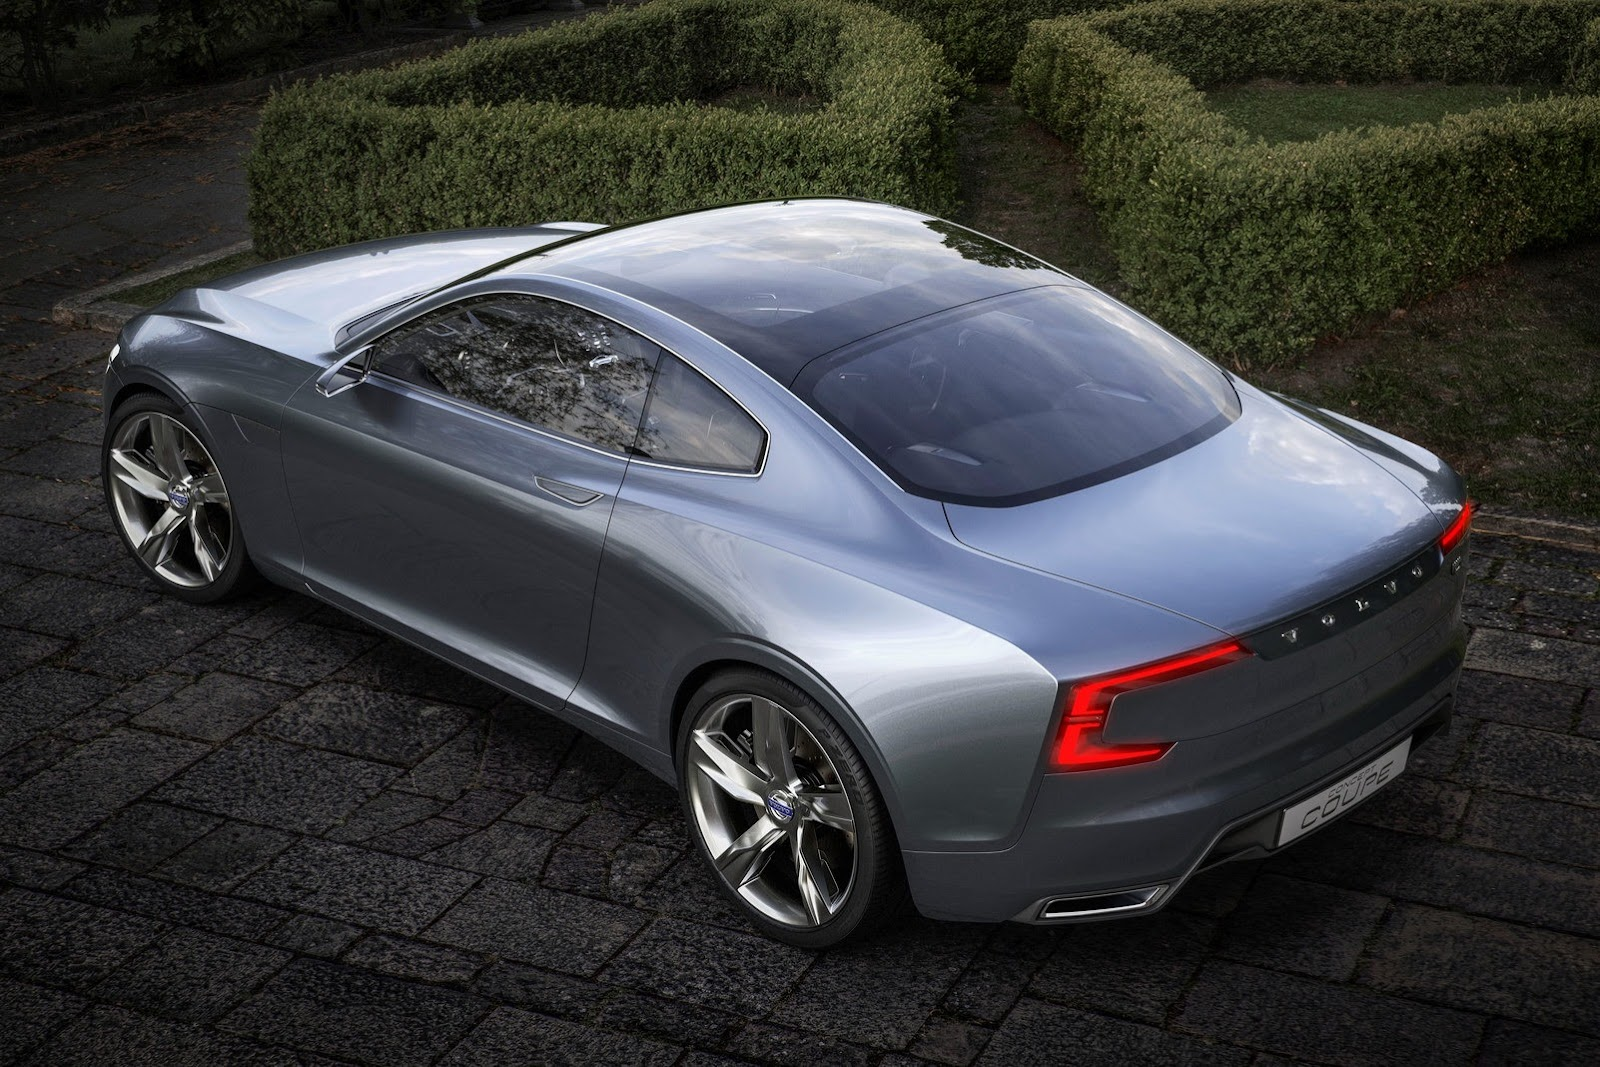 Volvo-Concept-Coupe-9%25255B2%25255D.jpg